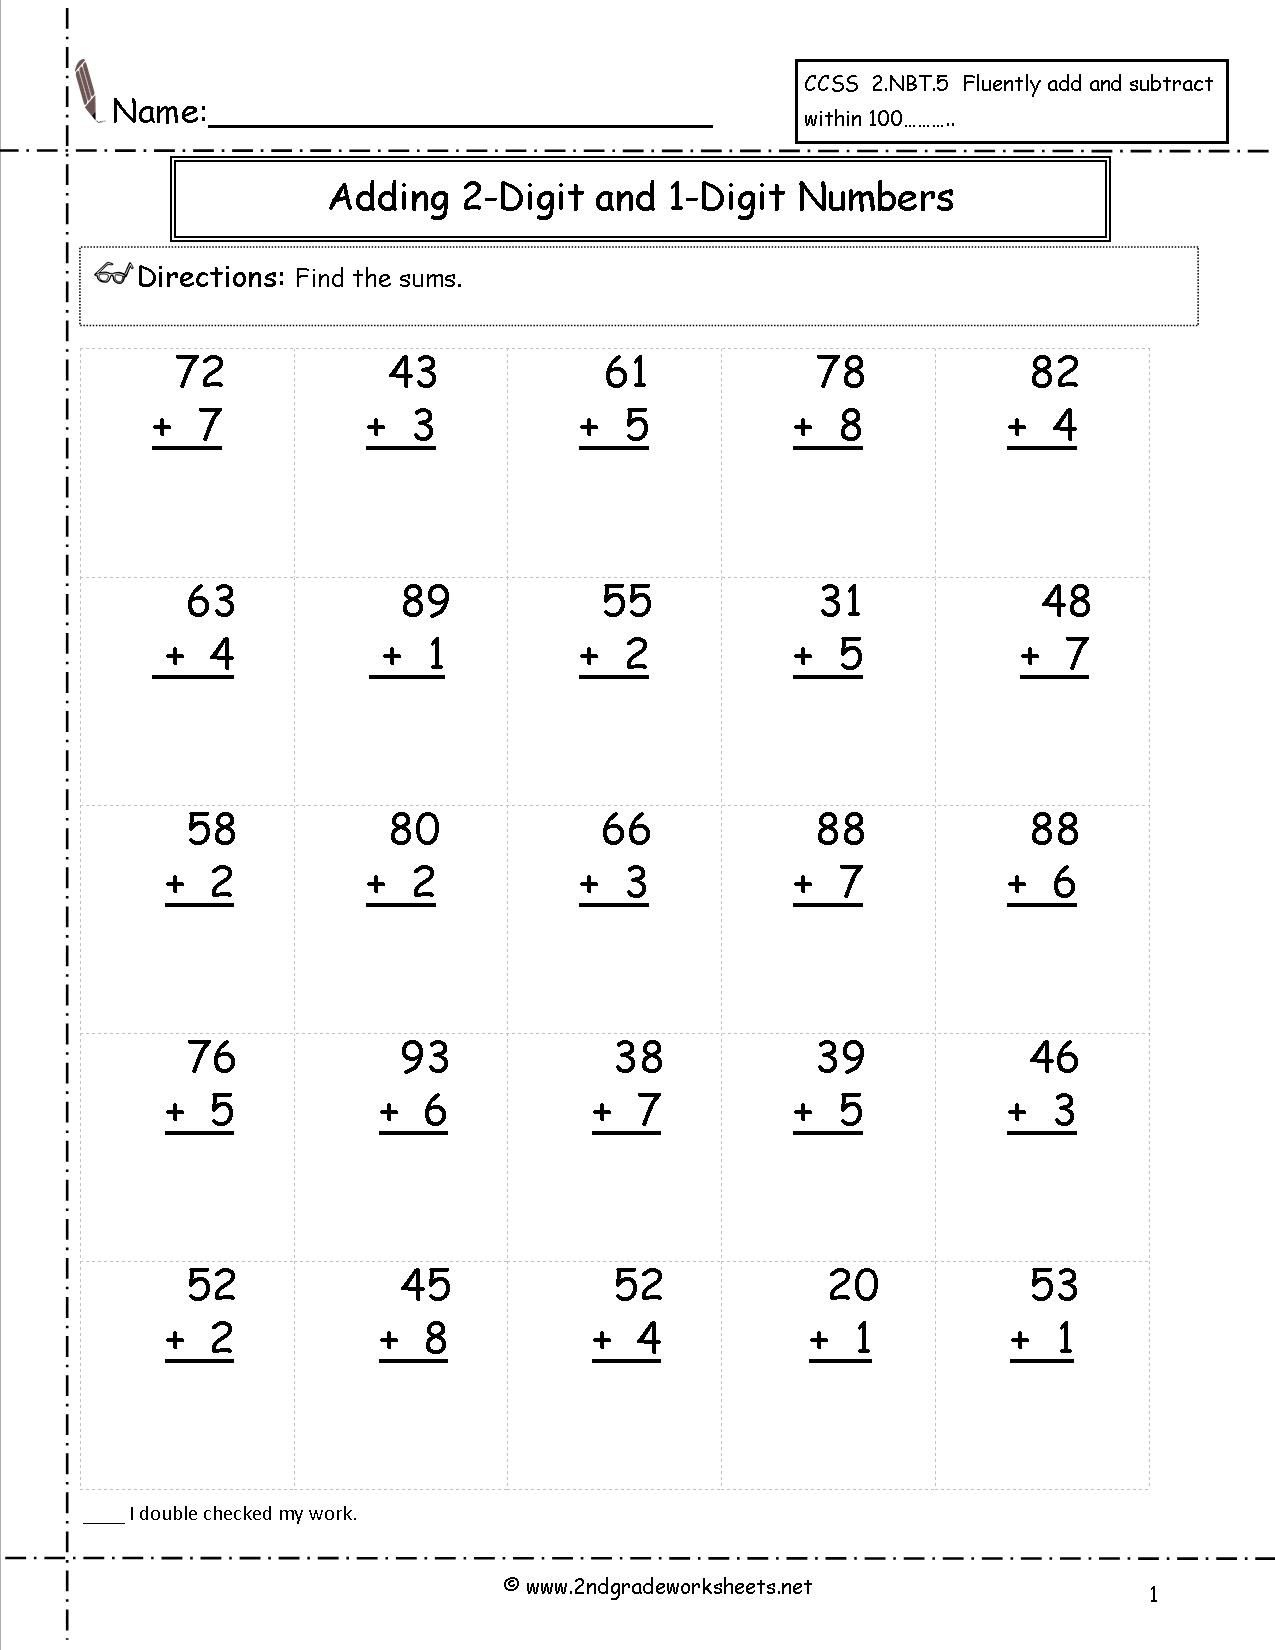 Adding Two Digit And One Digit Numbers | Satta | 2Nd Grade Math - Free Printable Two Digit Addition Worksheets